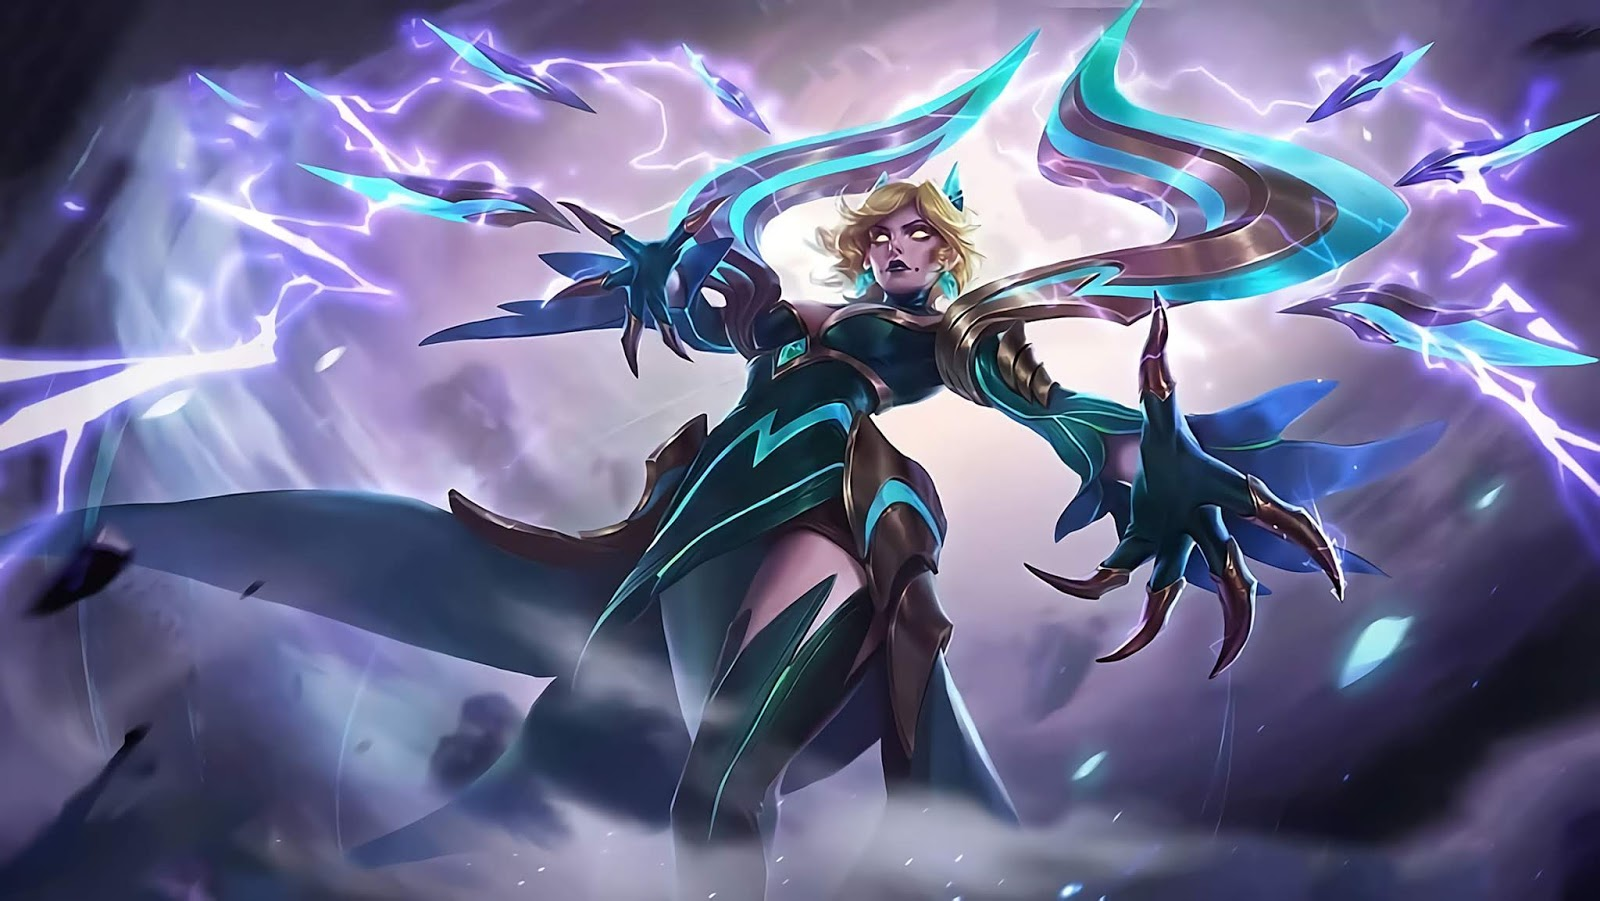 Wallpaper Eudora Emerland Enchantress Skins Mobile Legends HD for PC